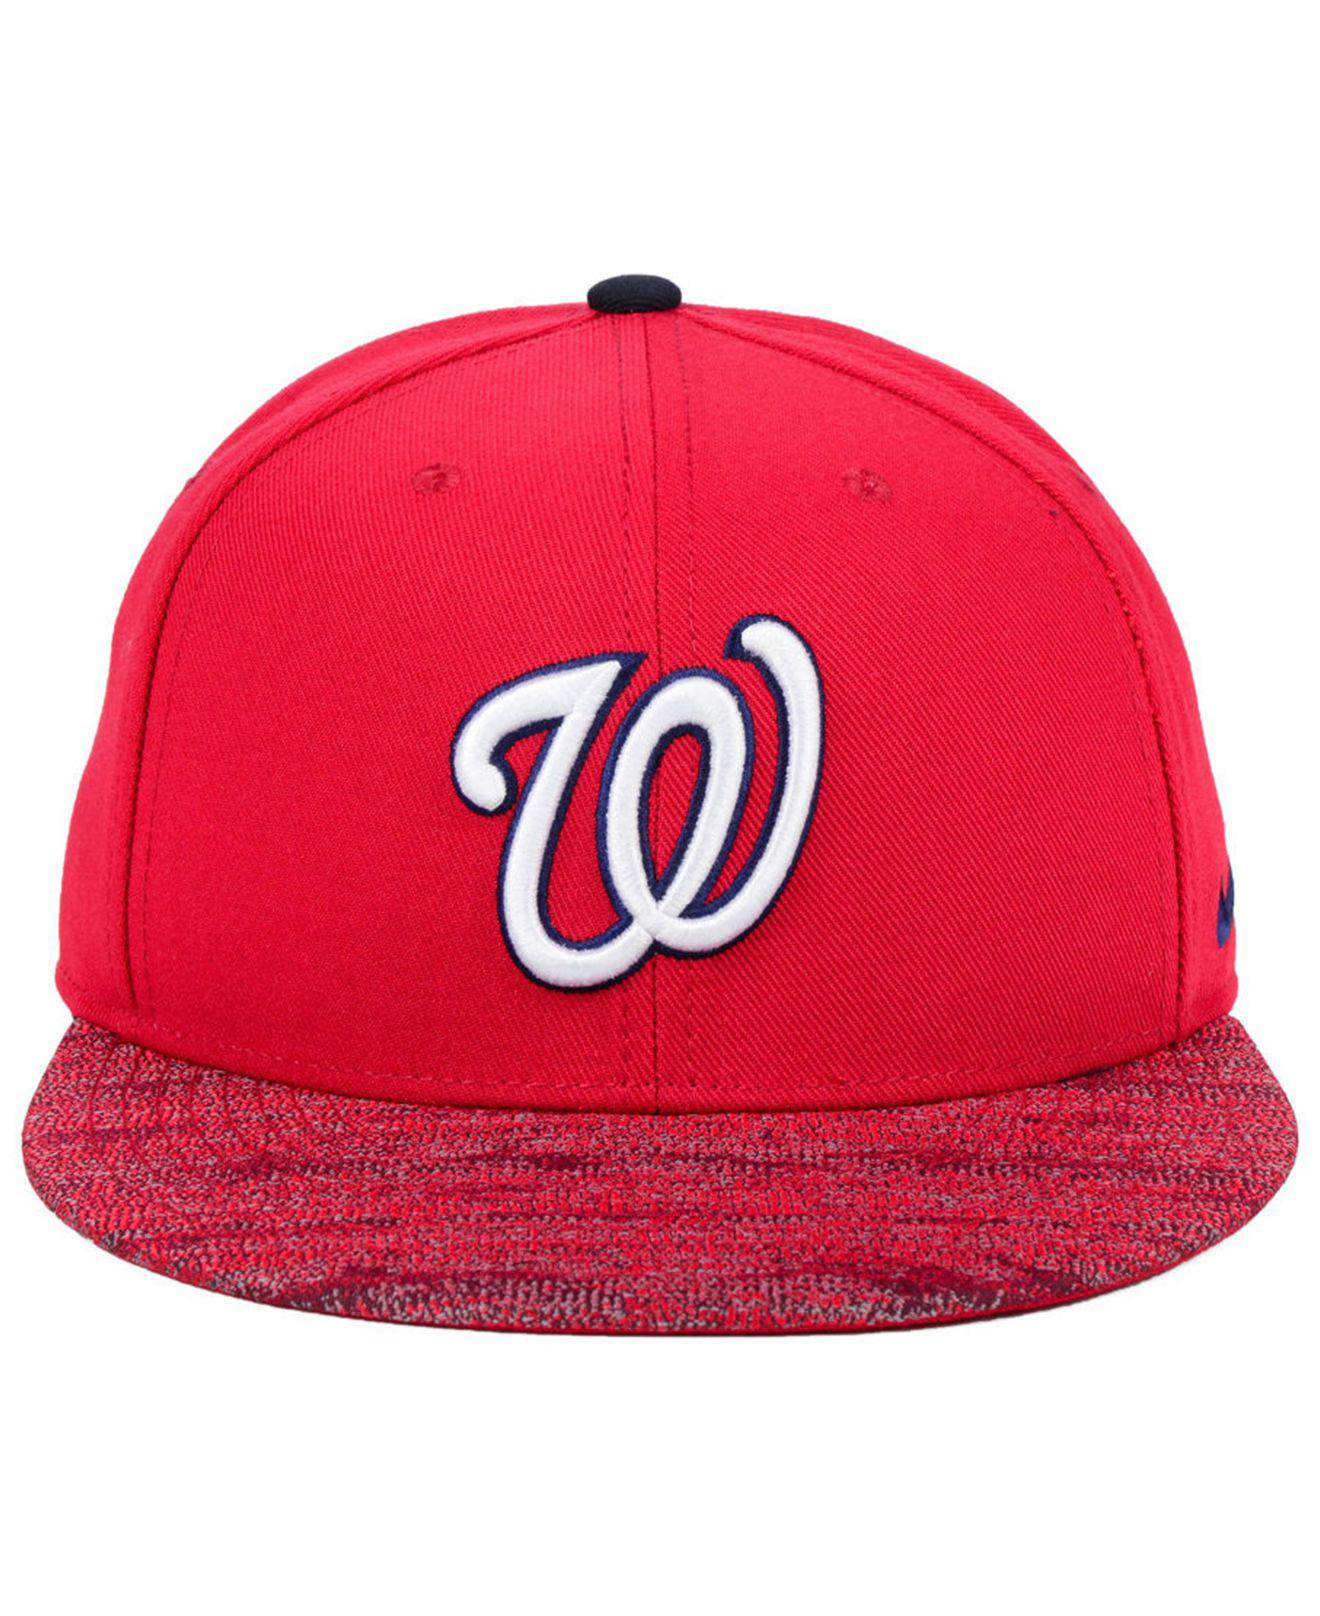 1c23ce0d1238c shopping lyst nike washington nationals reverse new day snapback cap in red  for men 6e5b4 18bd1